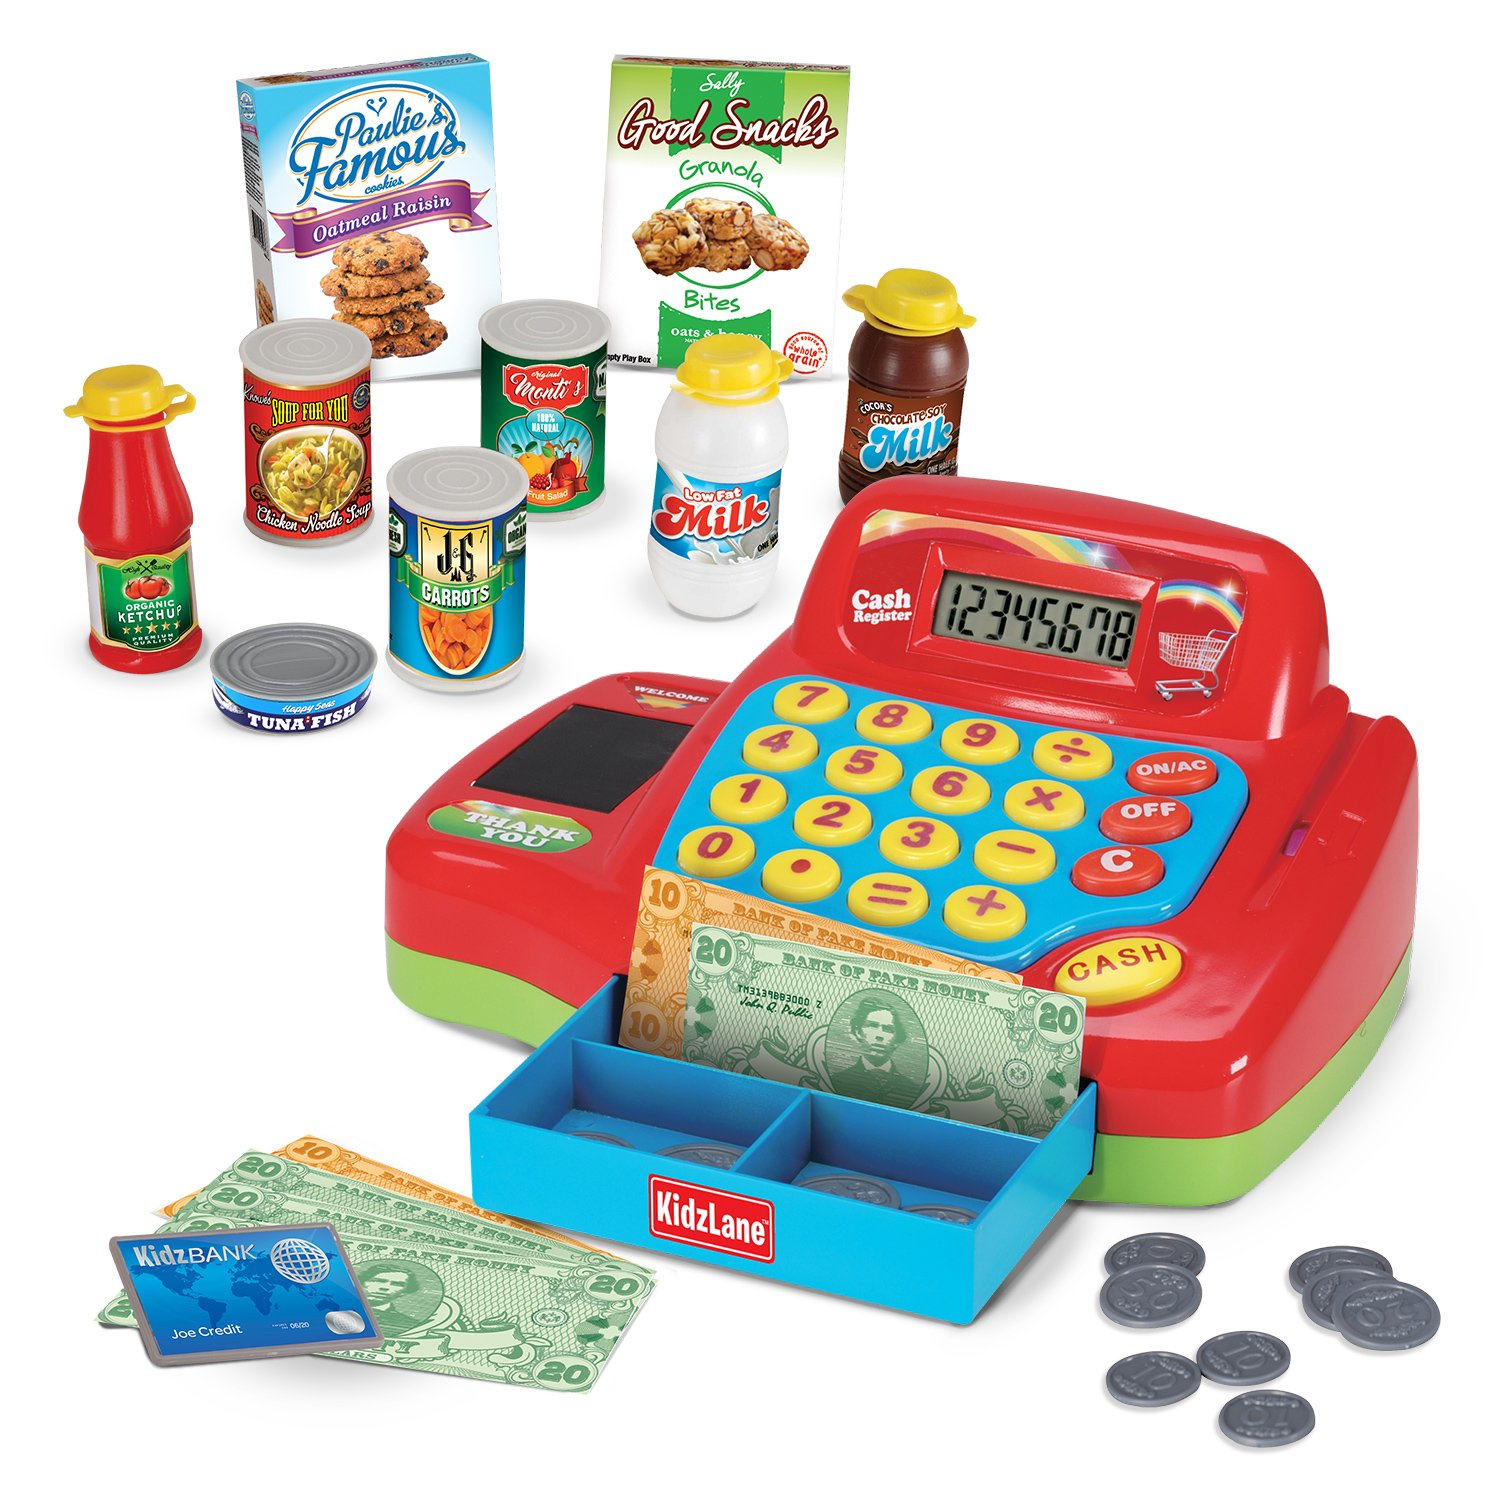 Kidzlane Electronic Toy Cash Register for Kids - 20+ Realistic Pieces Interactive Pretend Playset